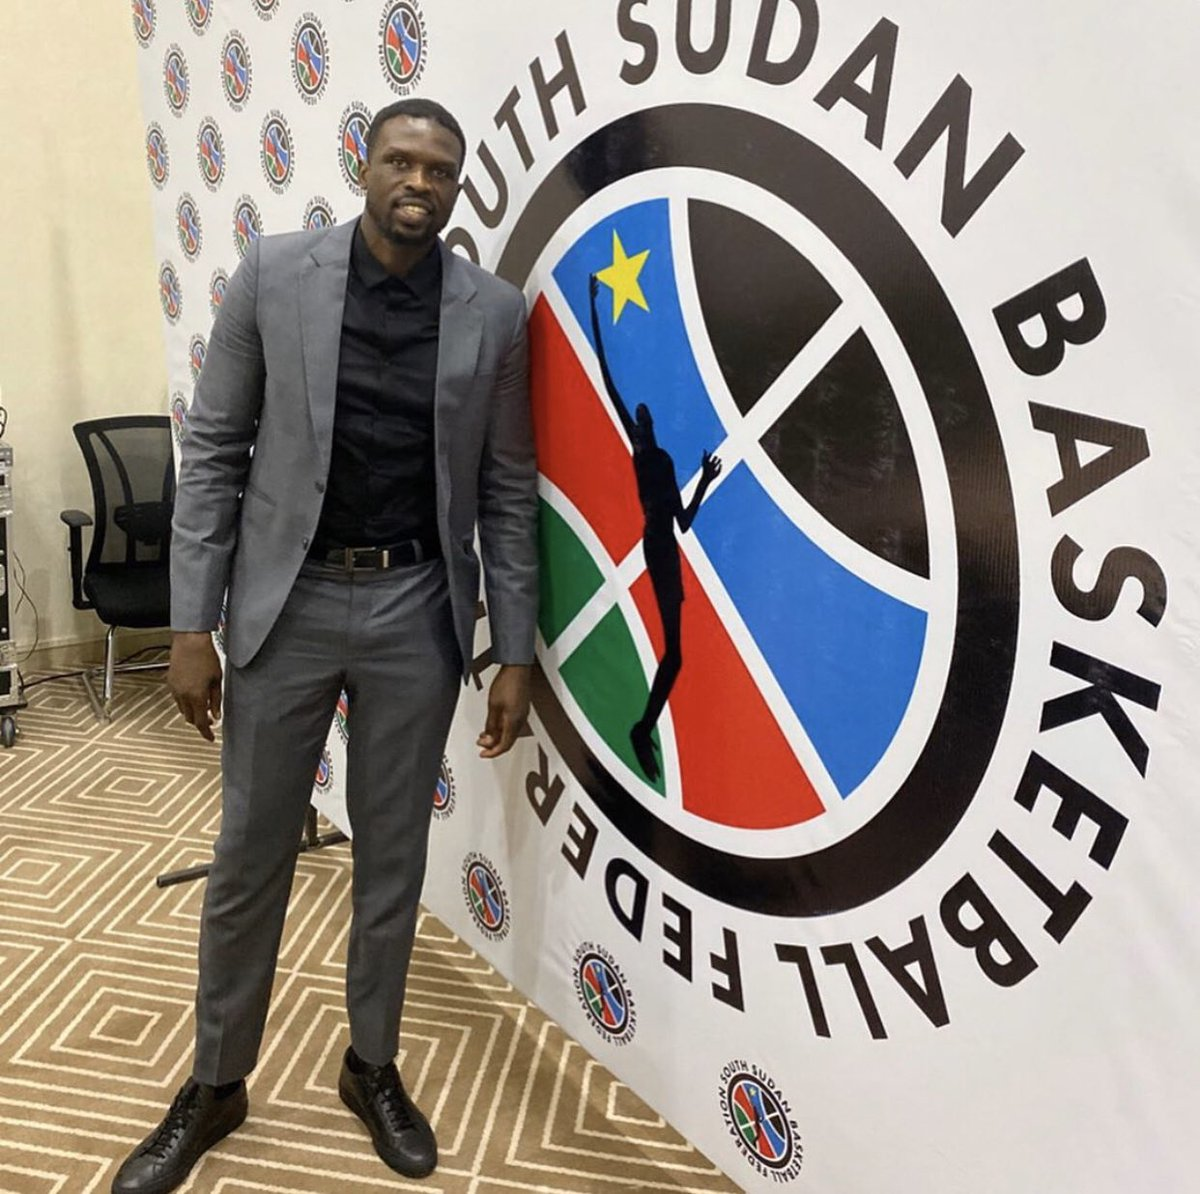 South Sudan has a new basketball federation that's been voted on by the people and I'm very proud, excited and thankful to be elected as the new President. 🇸🇸🏀   Follow our journey ➡️ @SSBFed https://t.co/rofwdPKYR4